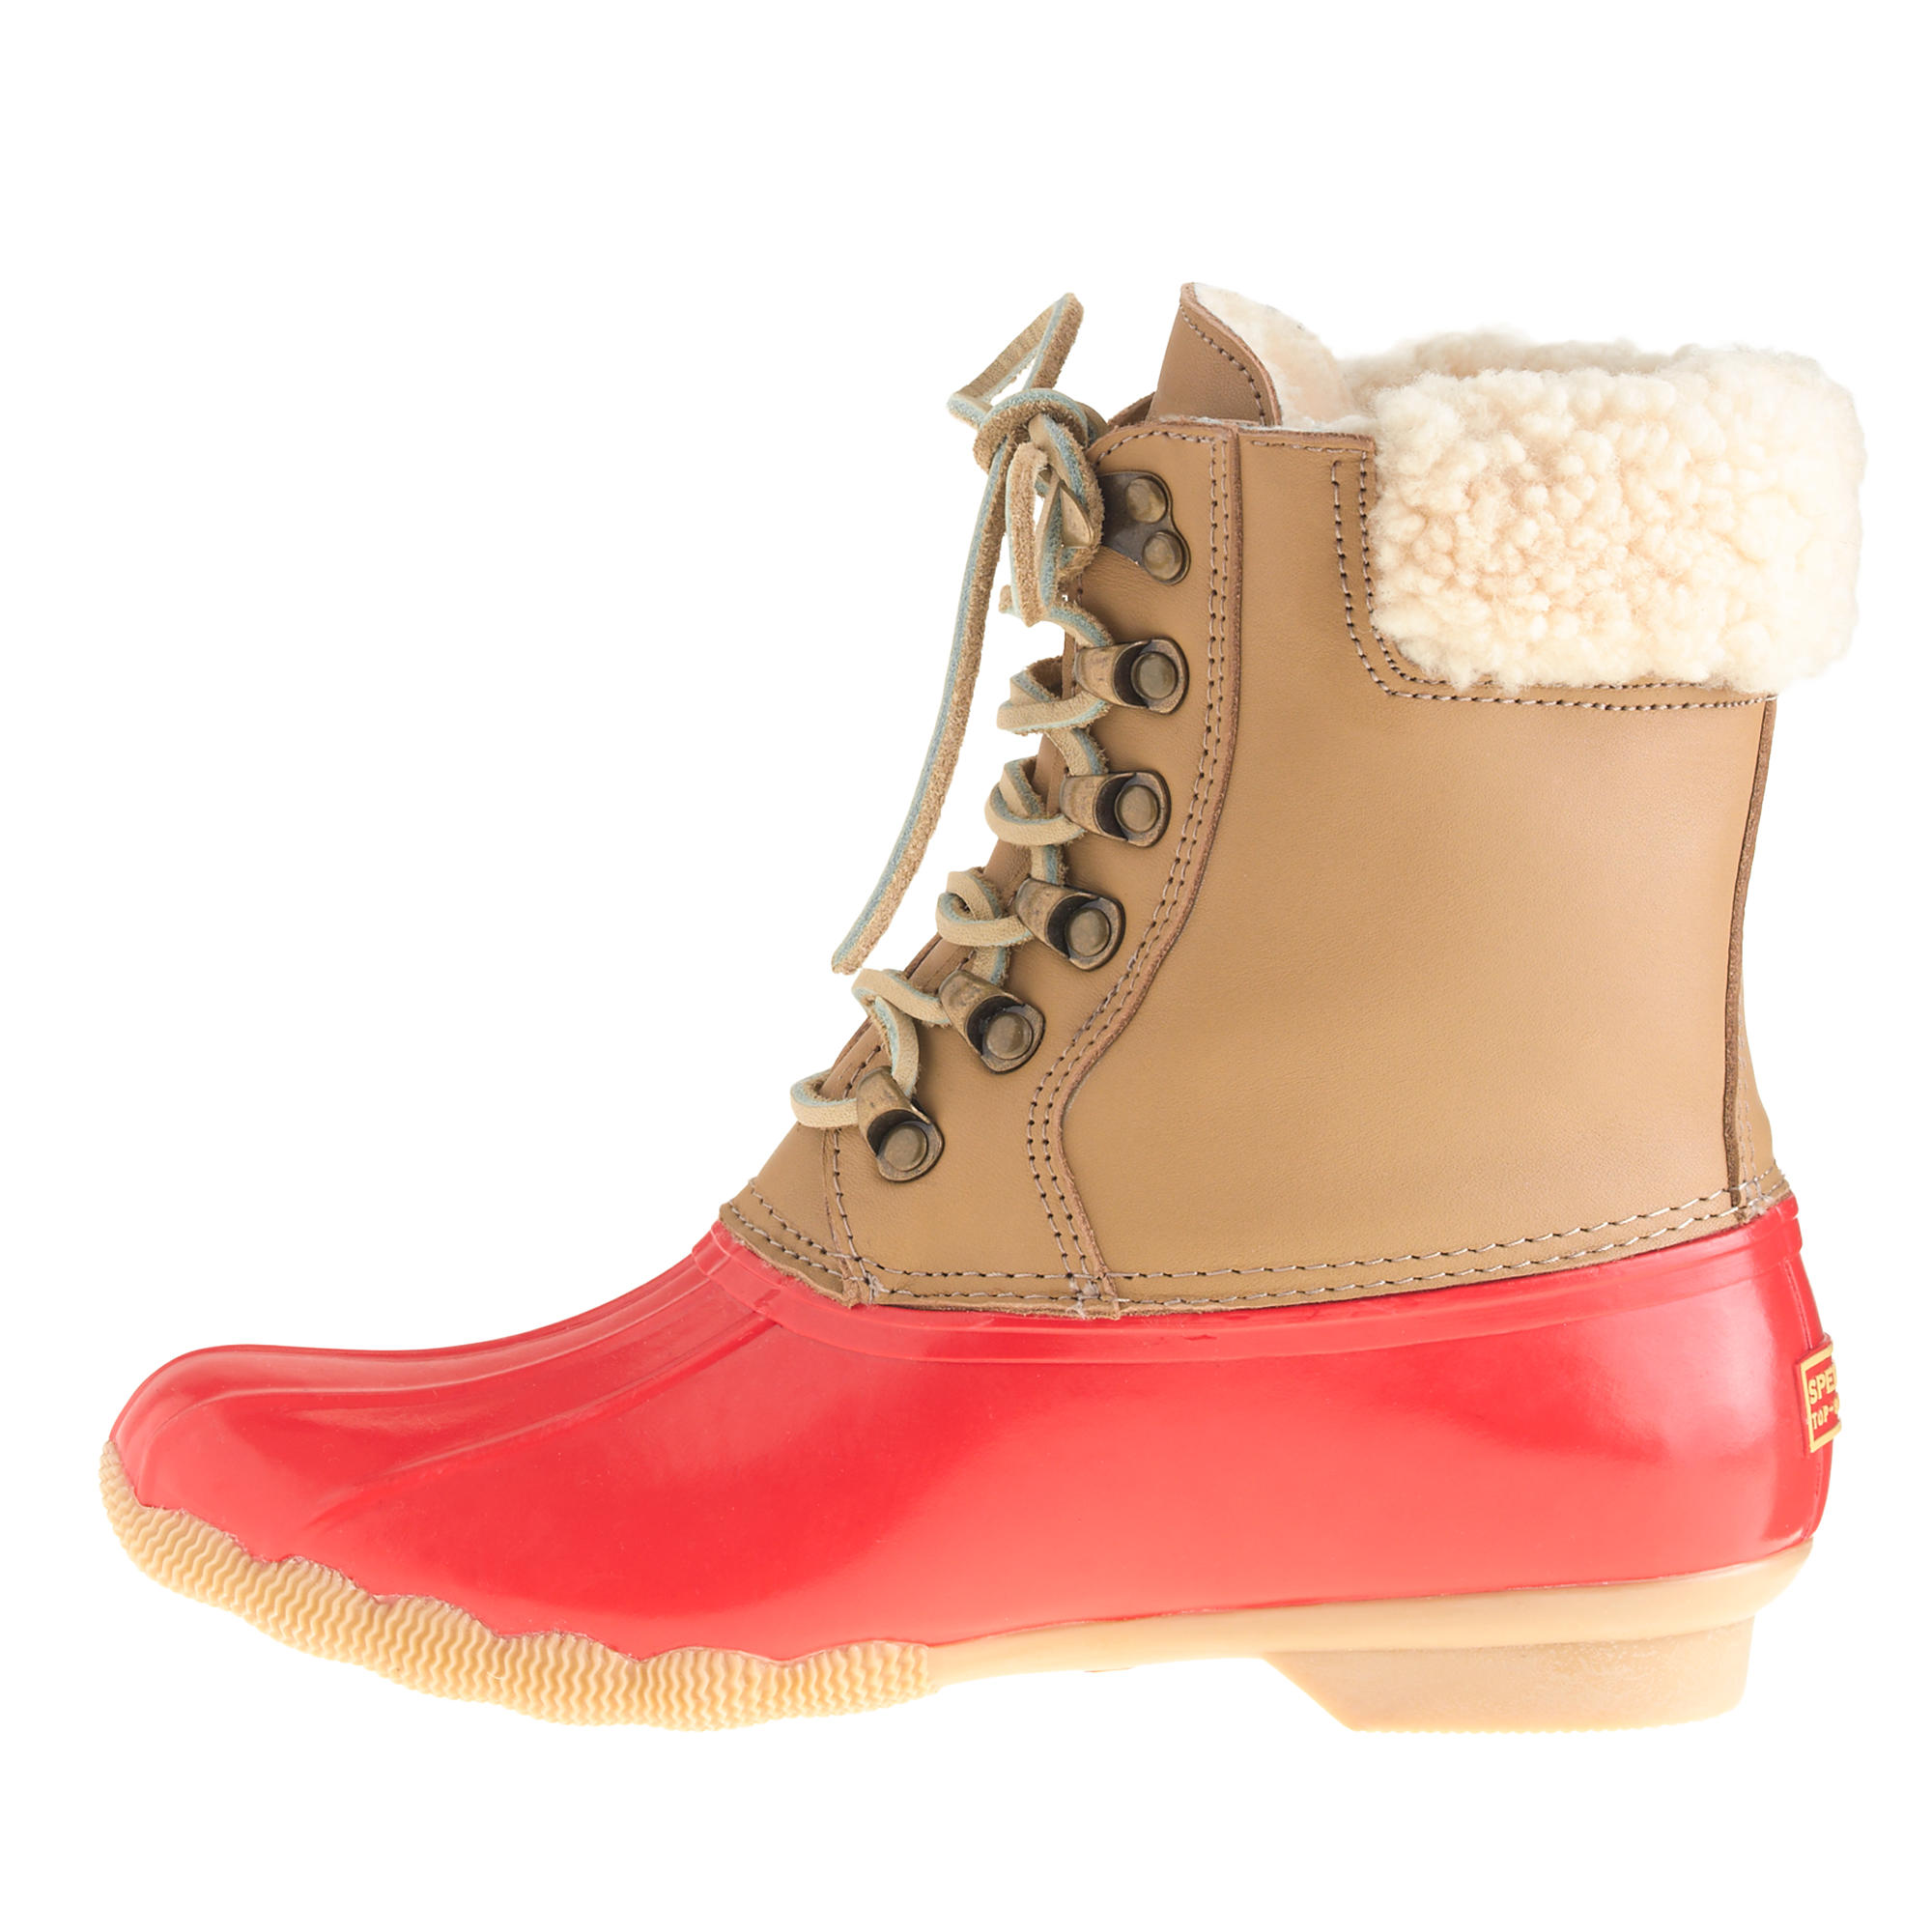 Sperry Top-Sider® for J.Crew leather shearwater boots : | J.Crew